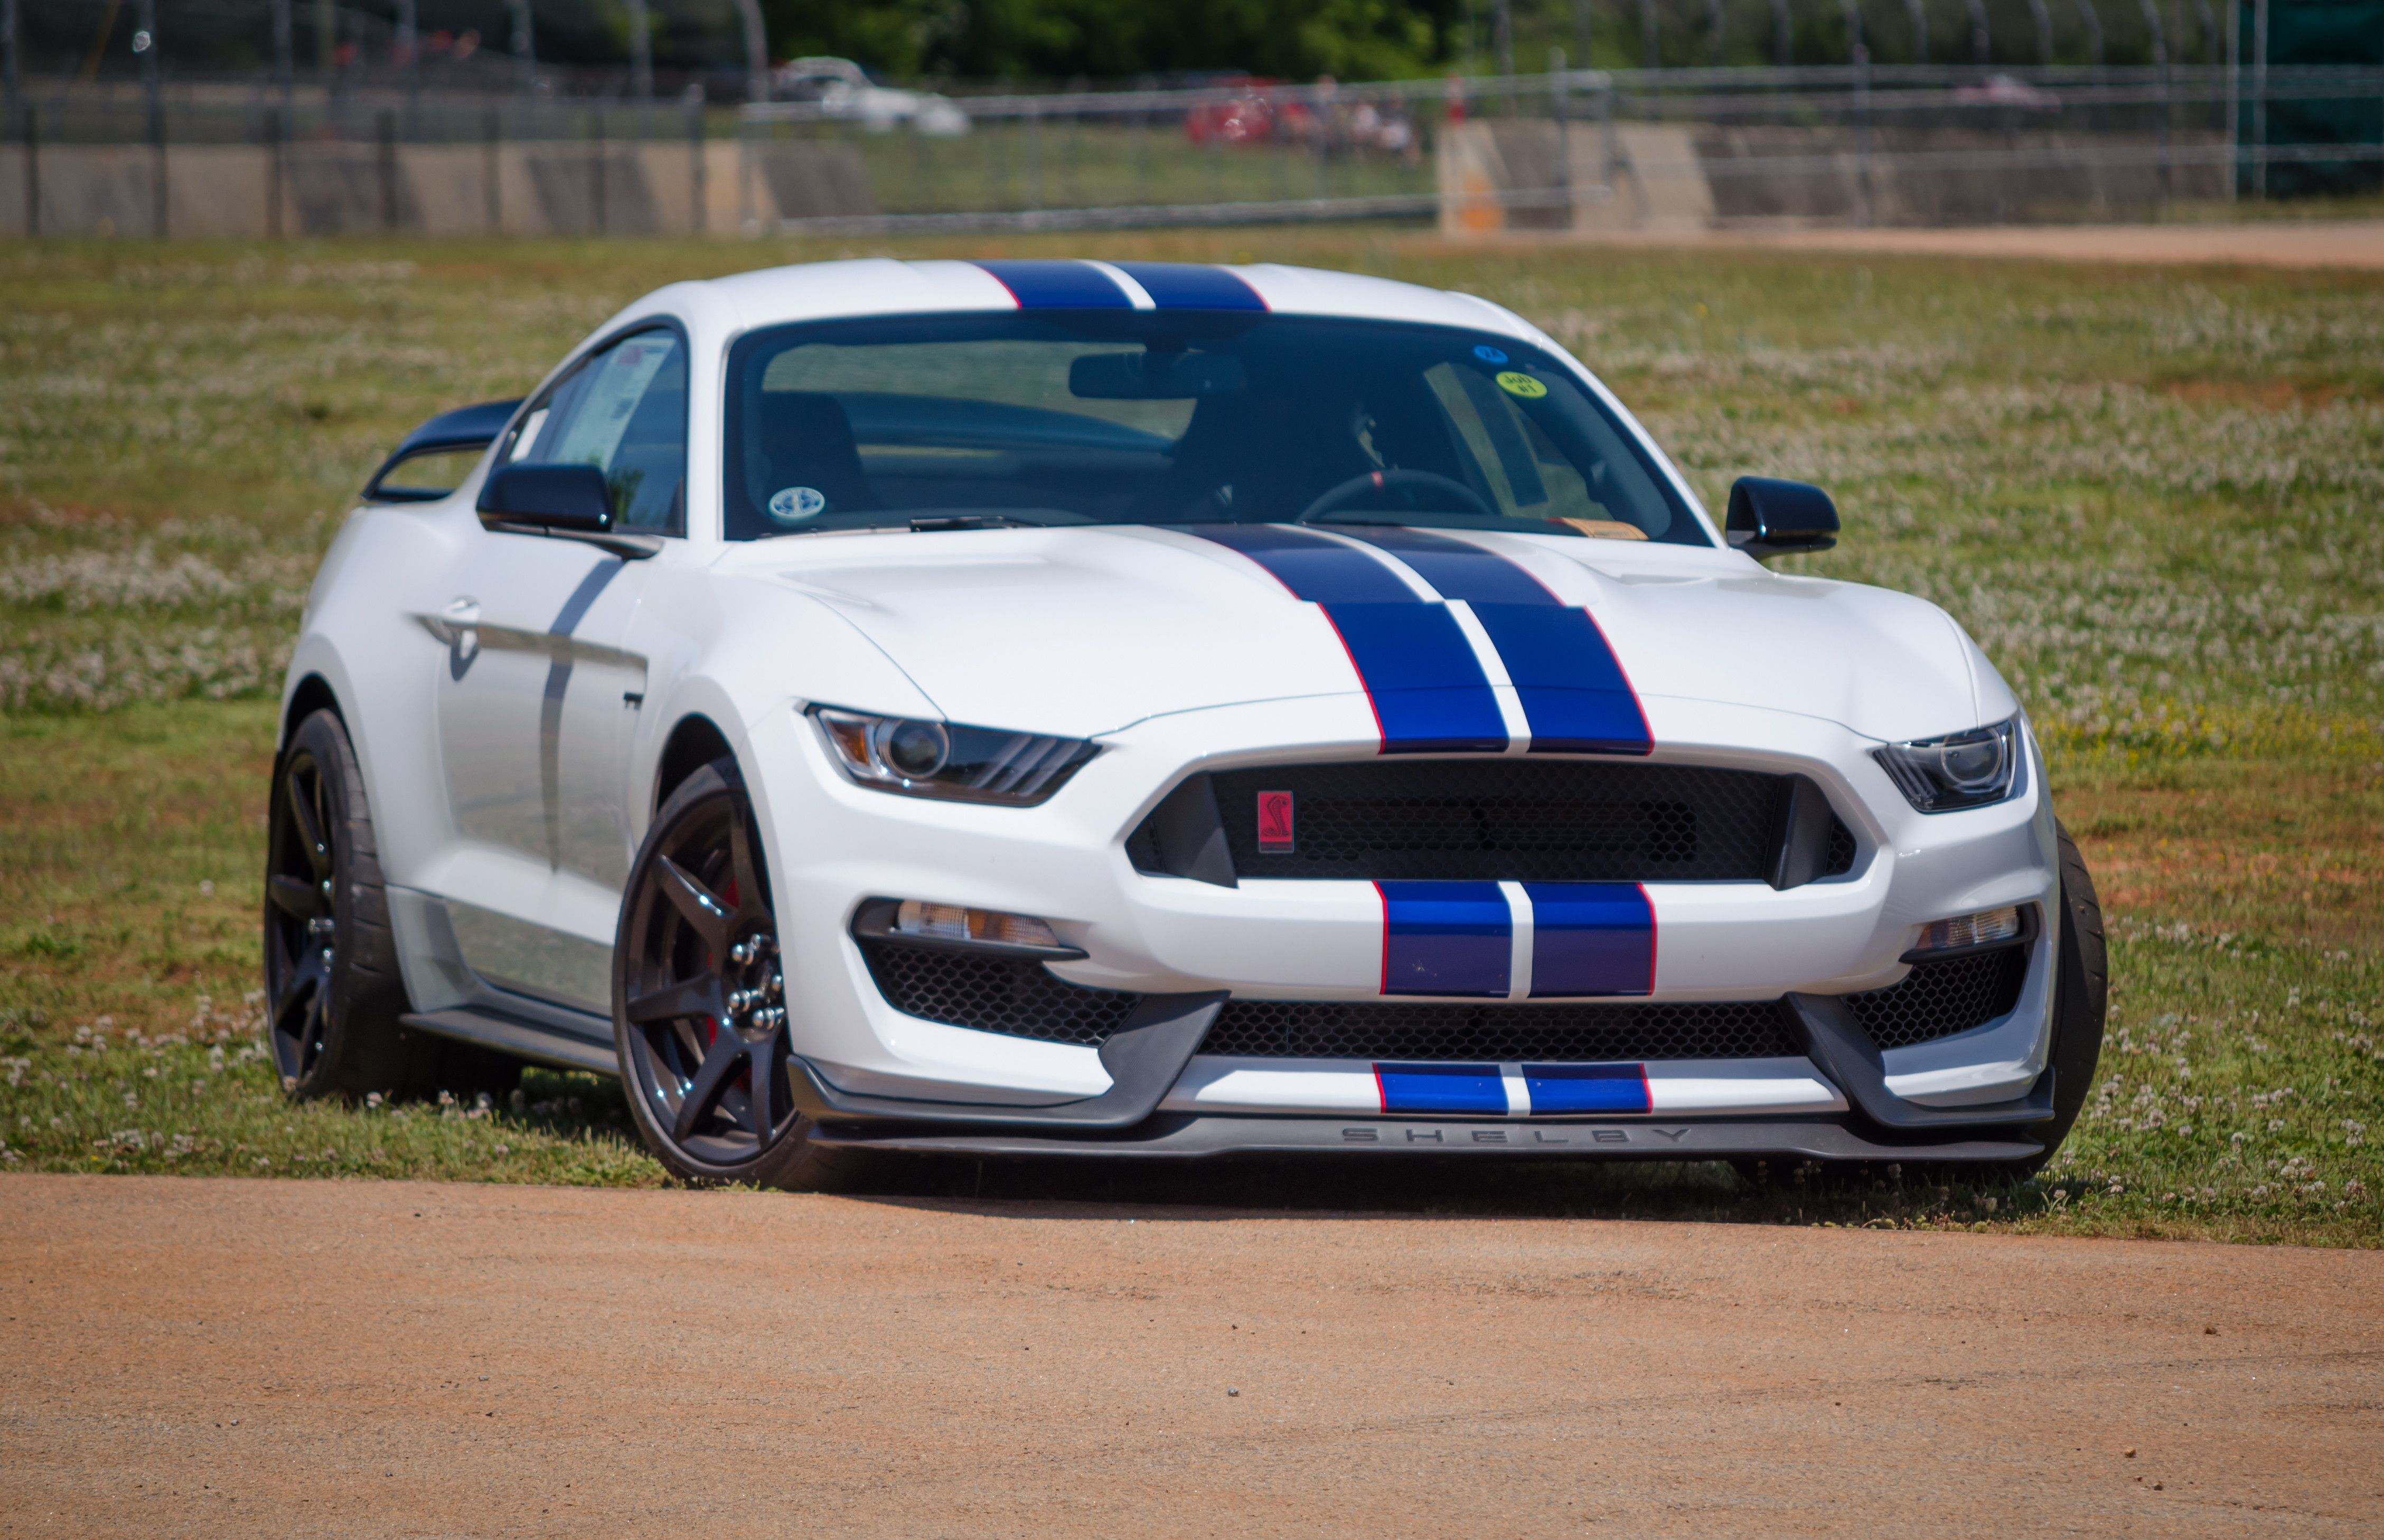 Shelby Gt350r 4514x2916 Oc Imgur Shelby Gt350r Ford Mustang Shelby Mustang Shelby